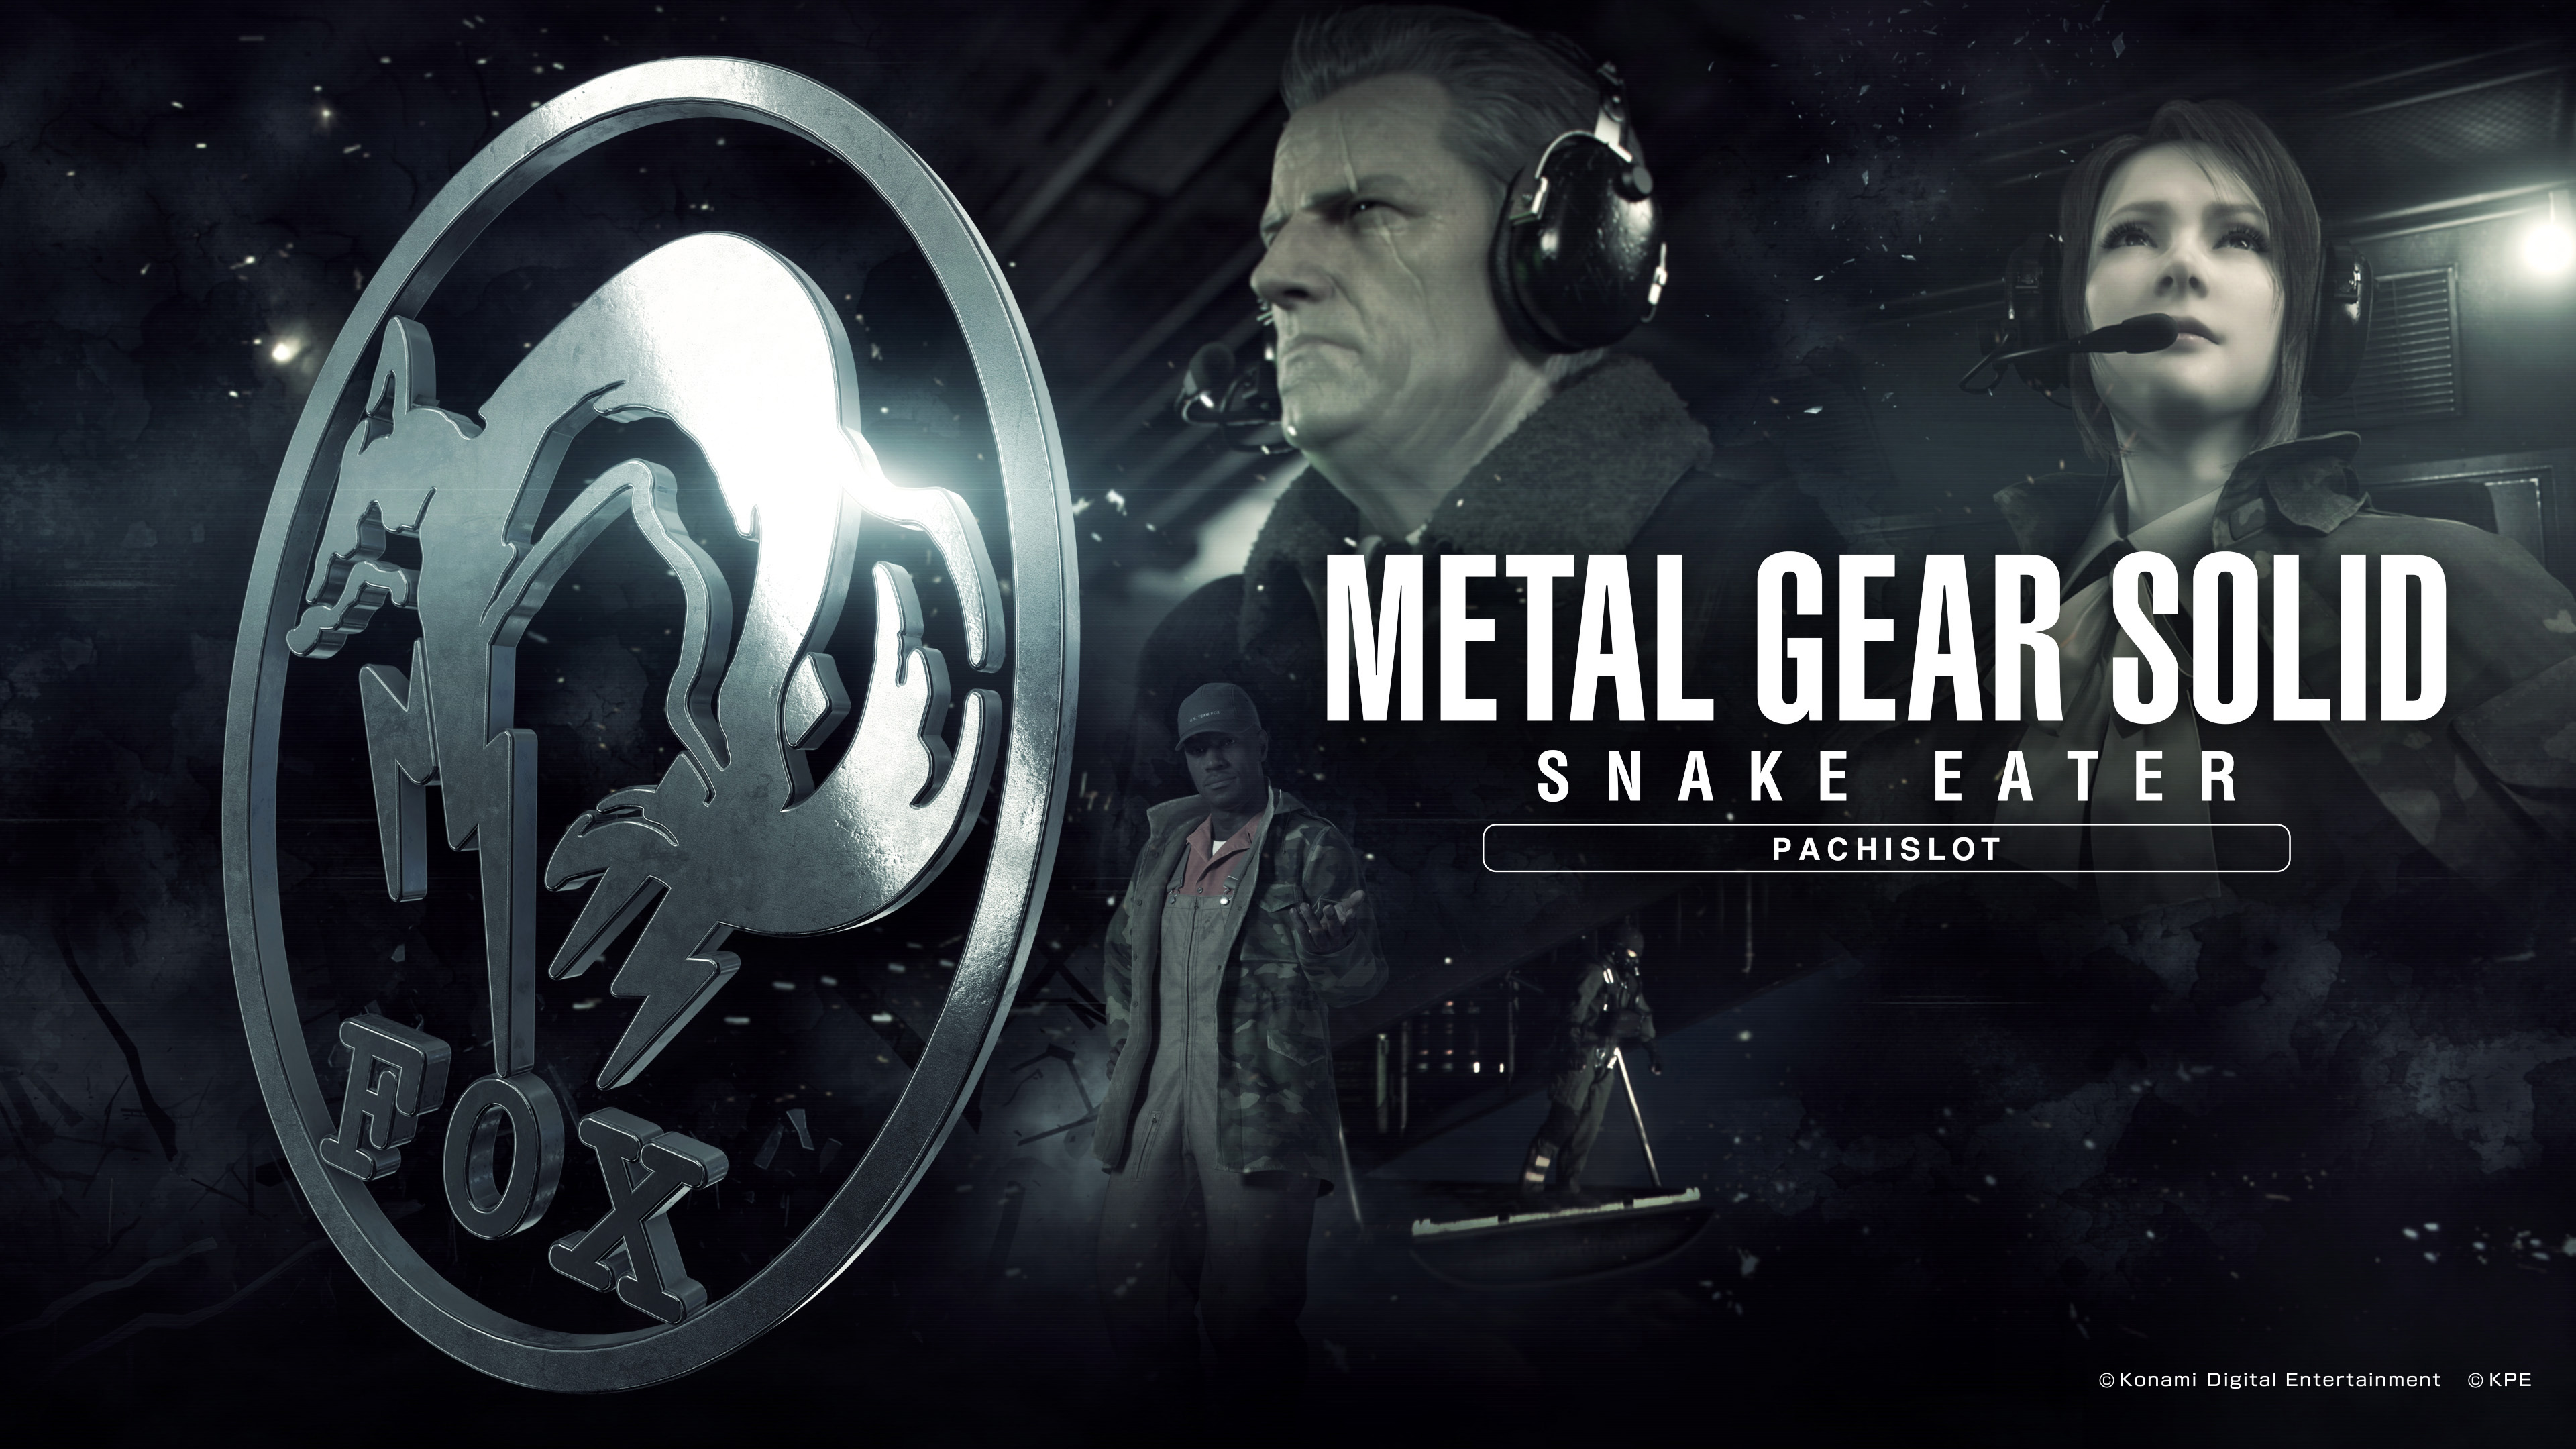 mgs-snake-eater-pachislot-wallpaper-pc-11